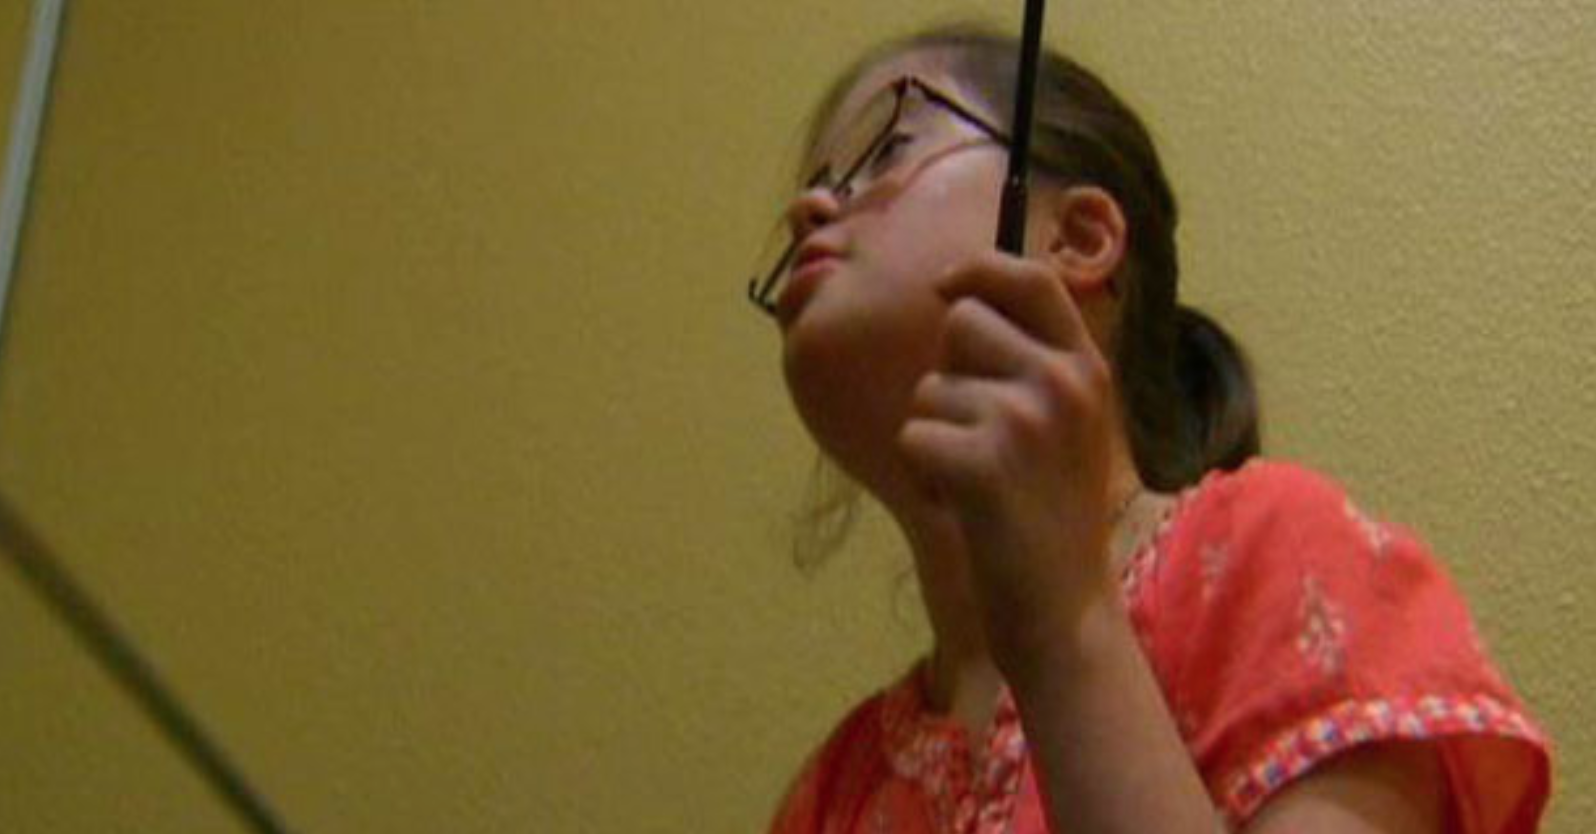 FOX 7 News SPECIAL REPORT: How music therapy is changing lives in Central Texas - The Center was featured on FOX 7 News on May 6th, 2015. The reporter, Jennifer Kendall, was professional and genuinely delightful in her work with our clients during filming.